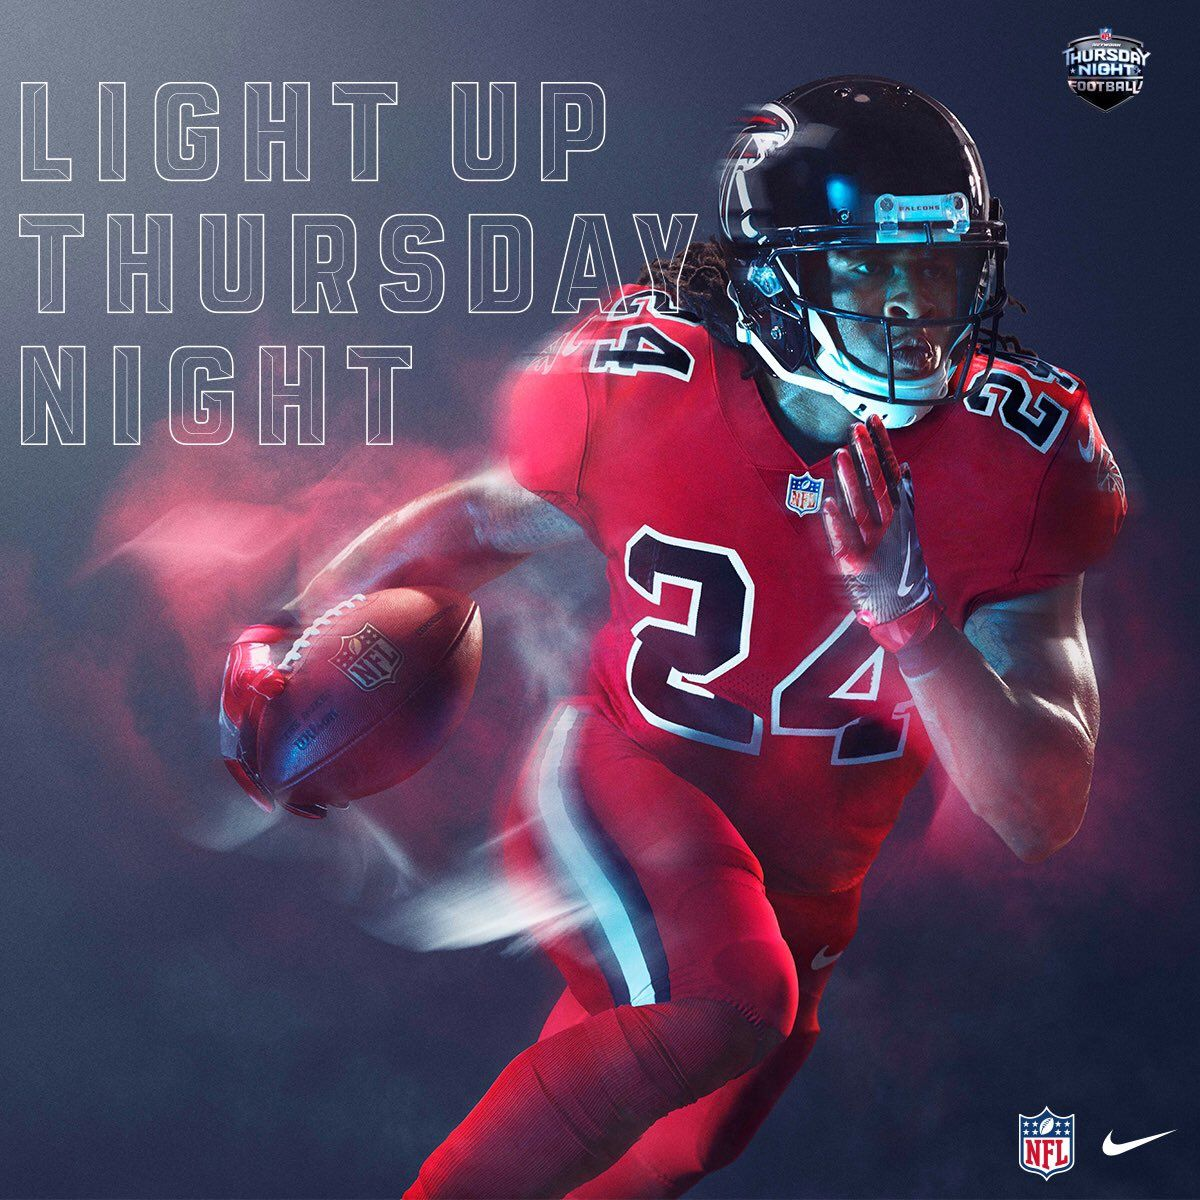 Power Ranking All 32 Nfl Color Rush Uniforms 29 Atlanta Falcons Color Rush Uniforms Nfl Color Rush Uniforms Color Rush